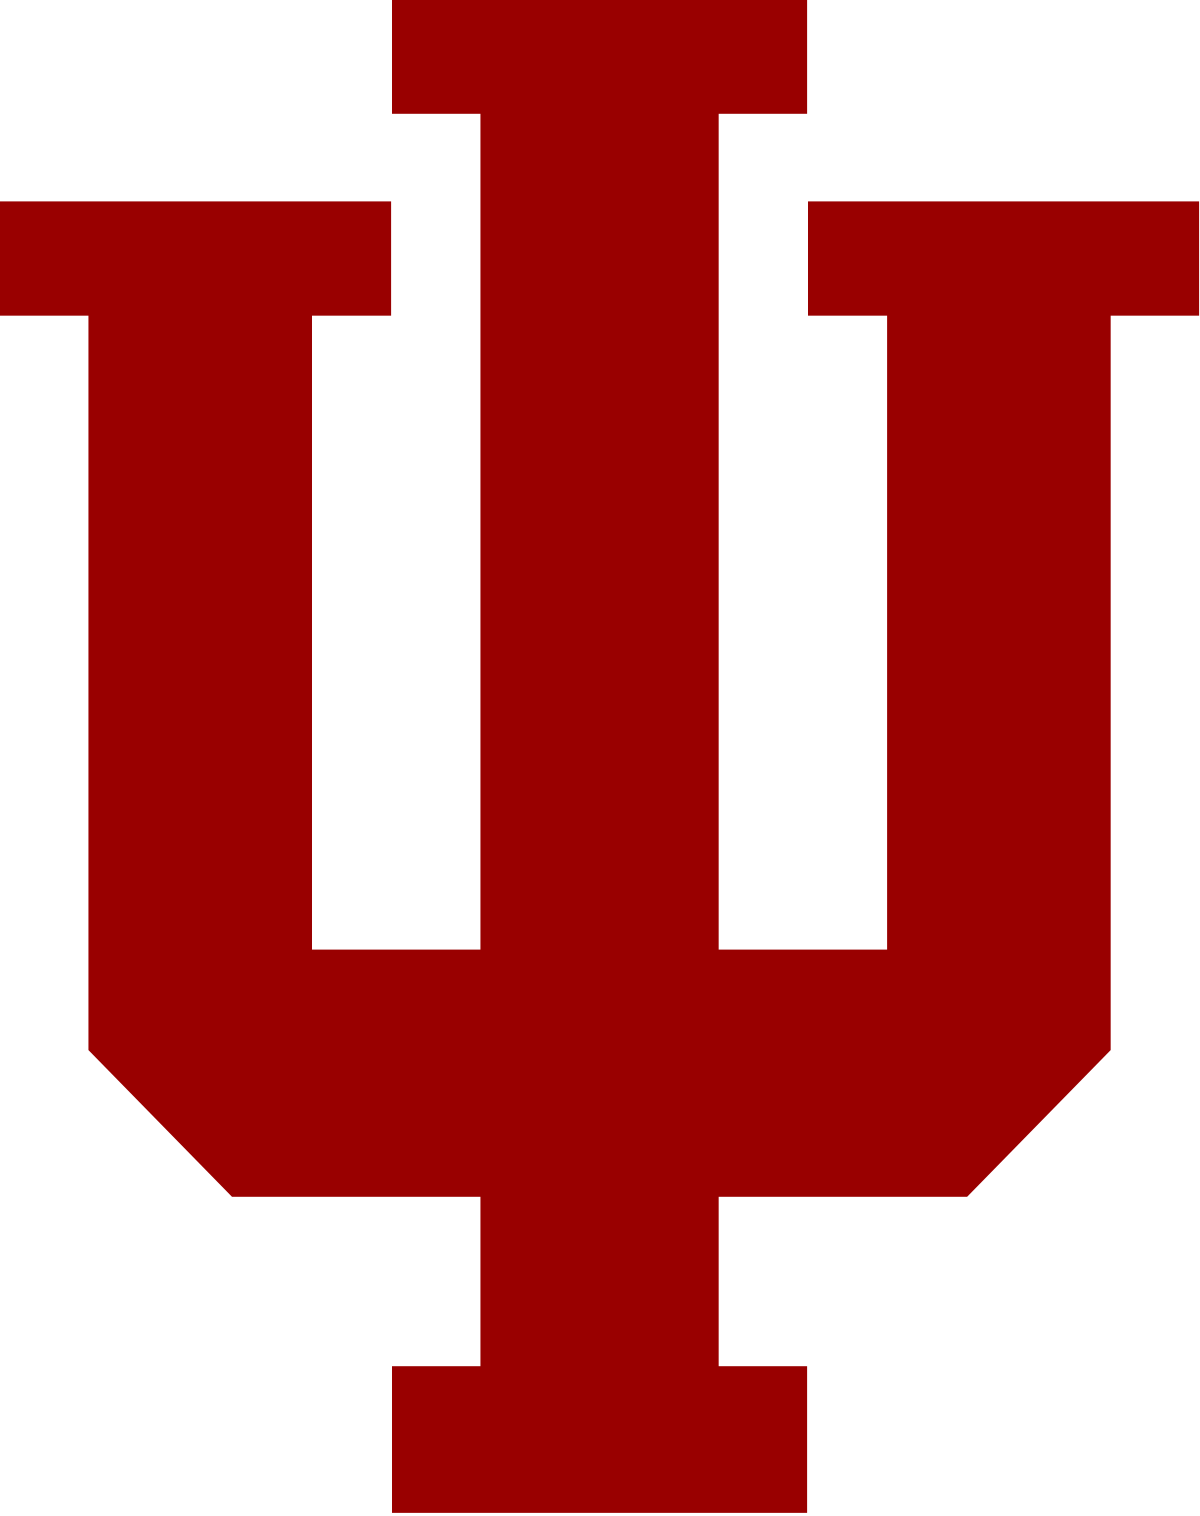 Vector ohio red. Indiana hoosiers football wikipedia